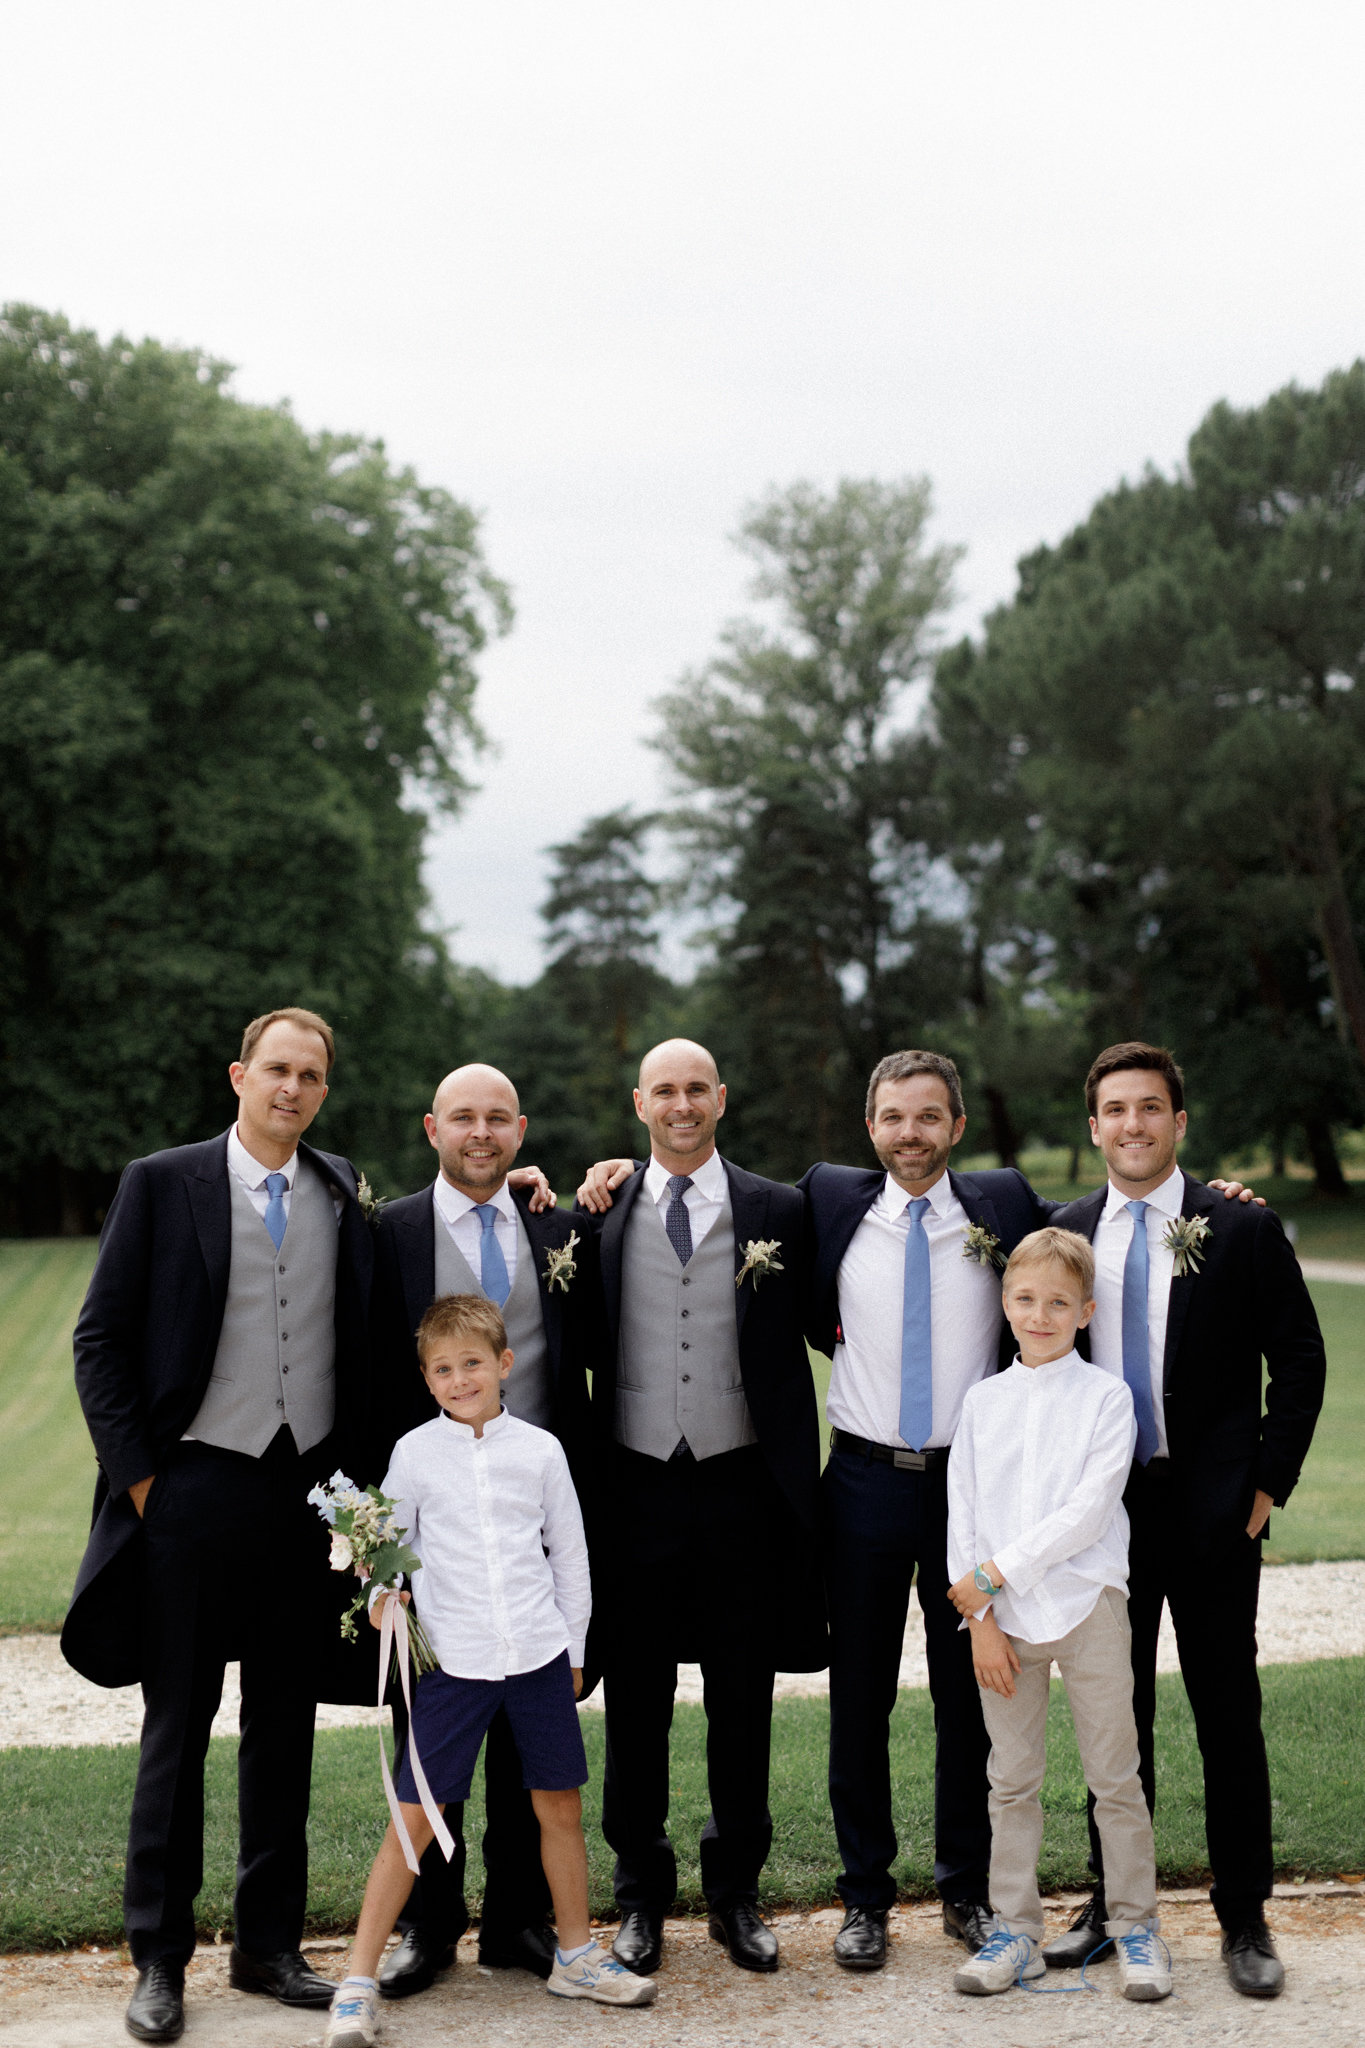 The Groom and All His Men